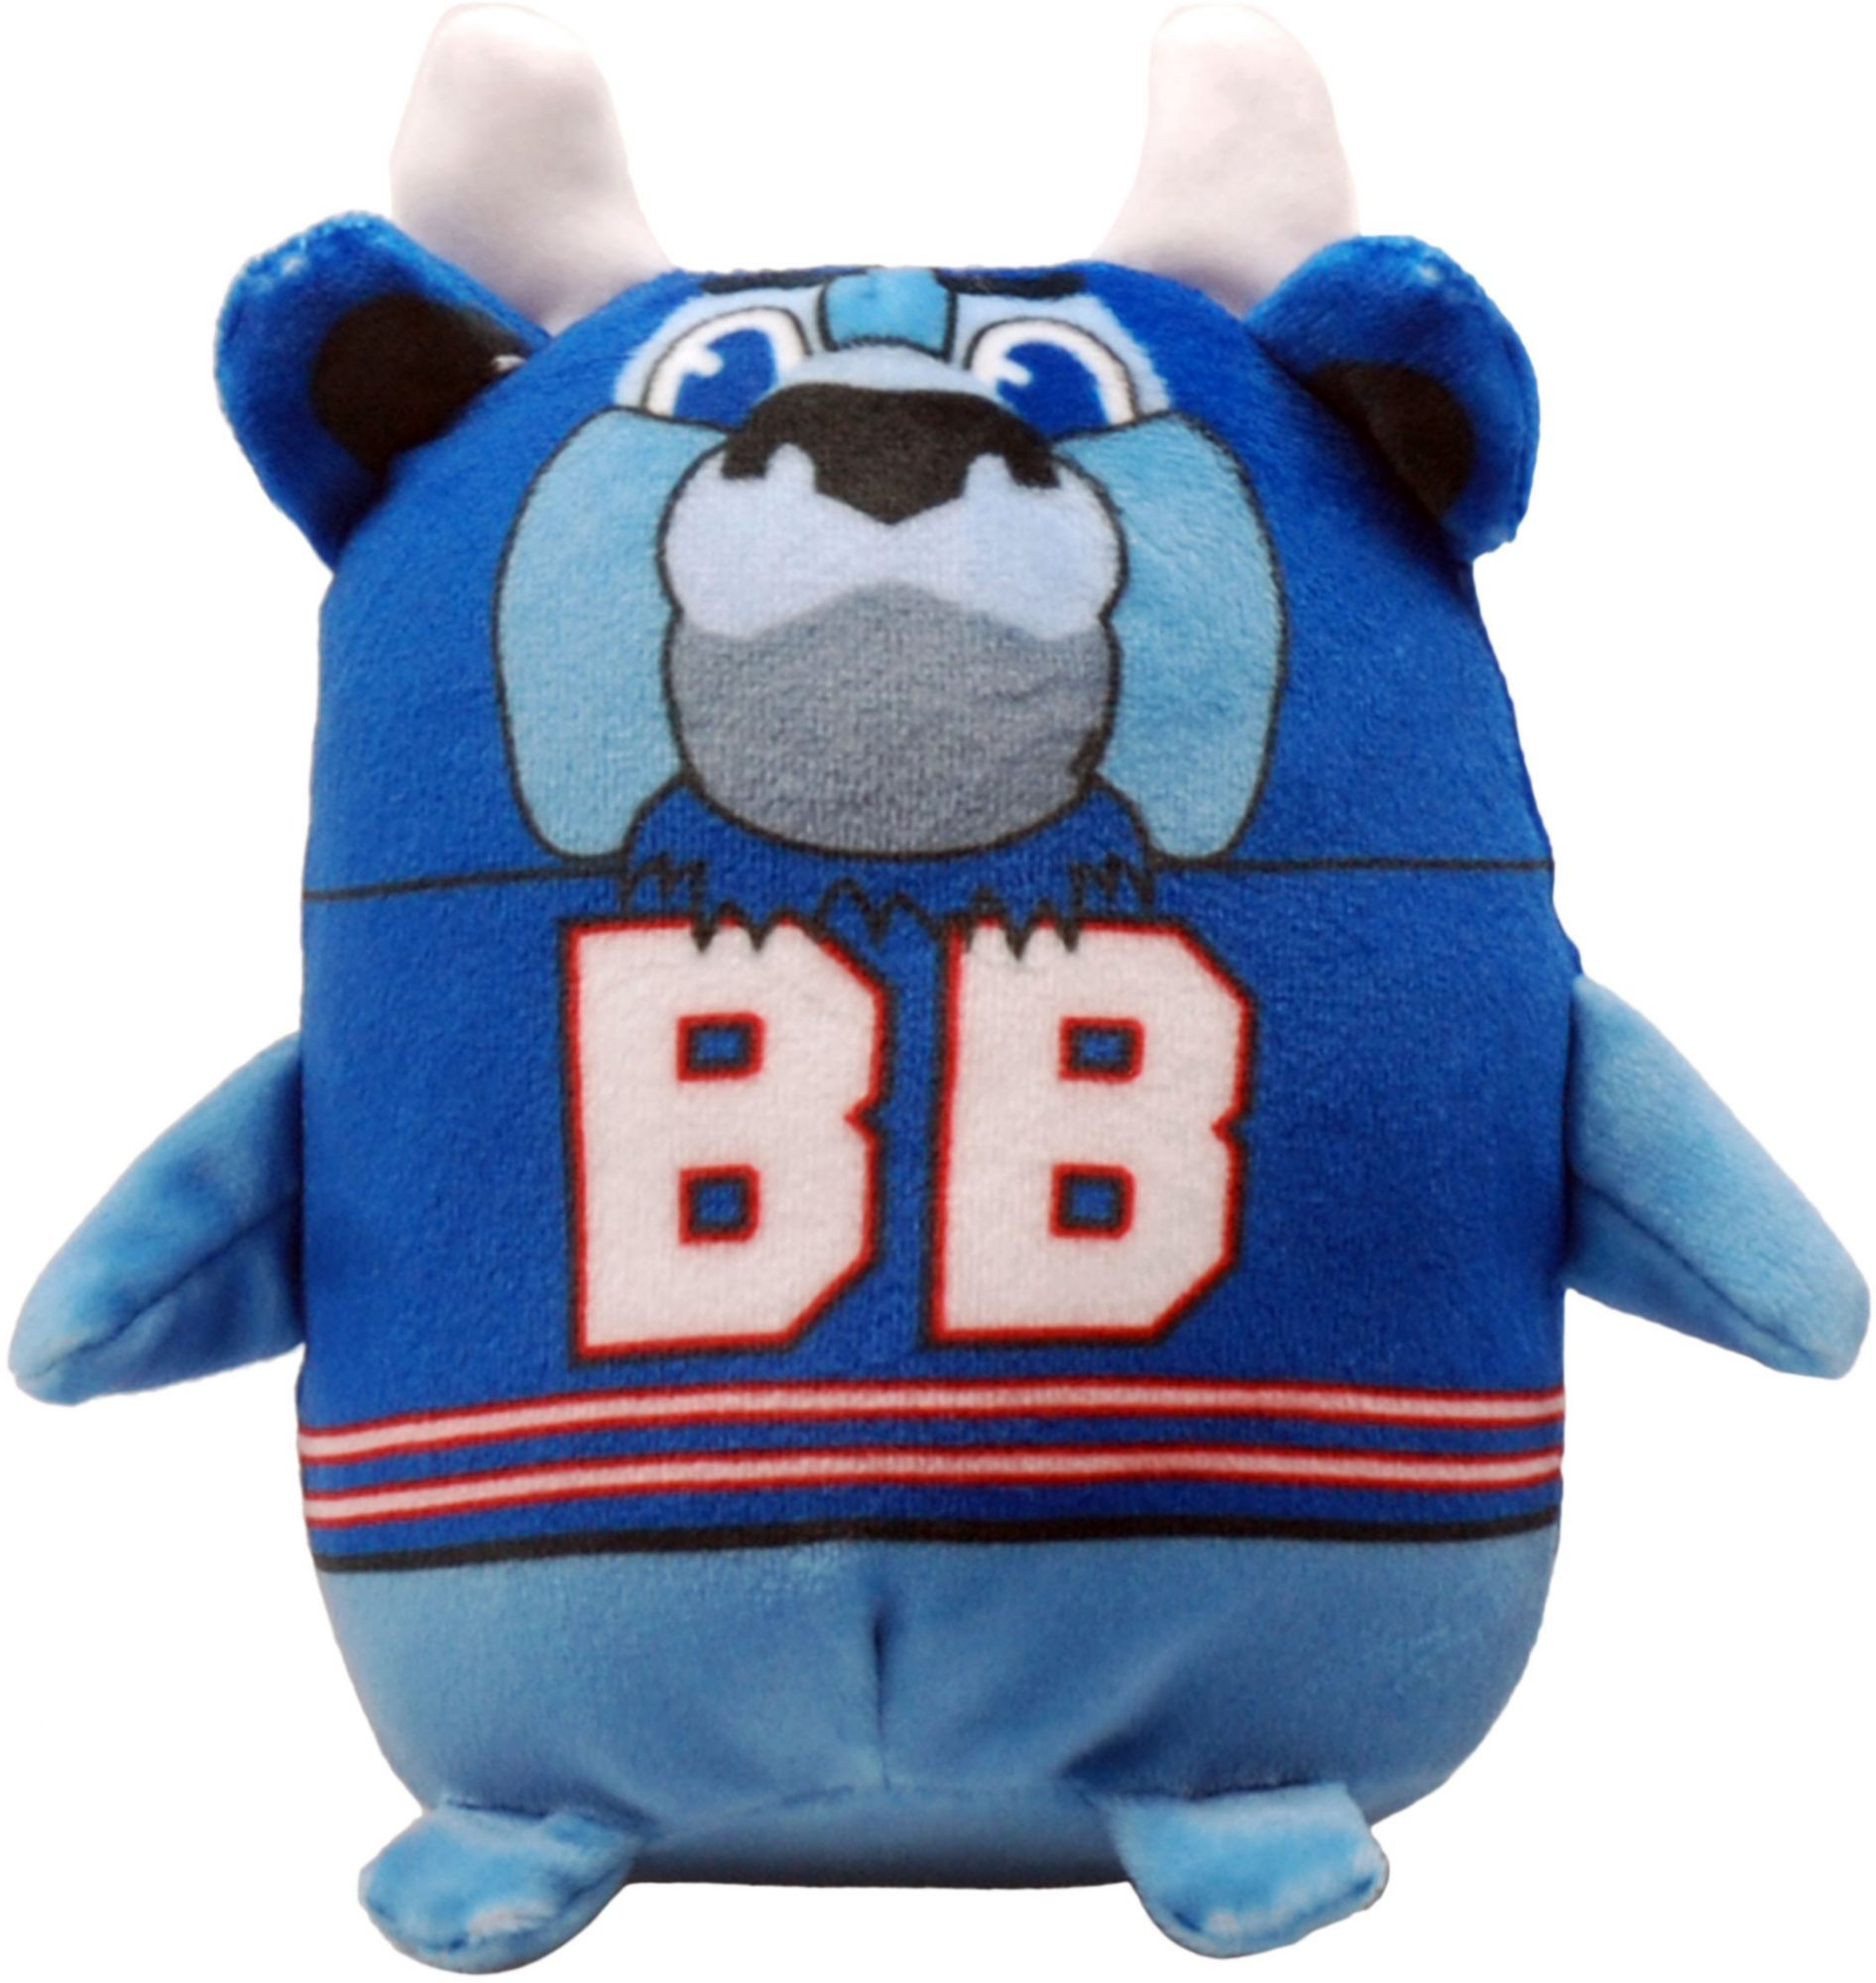 Your little one can showcase their love for their favorite mascot with the FOCO® Buffalo Bills Mascot Smusher Plush. Stuffed Mascot Plush stuffed toy Made of soft material Team Spirit Features Buffalo Bills mascot Additional Details Officially licensed by the NFL